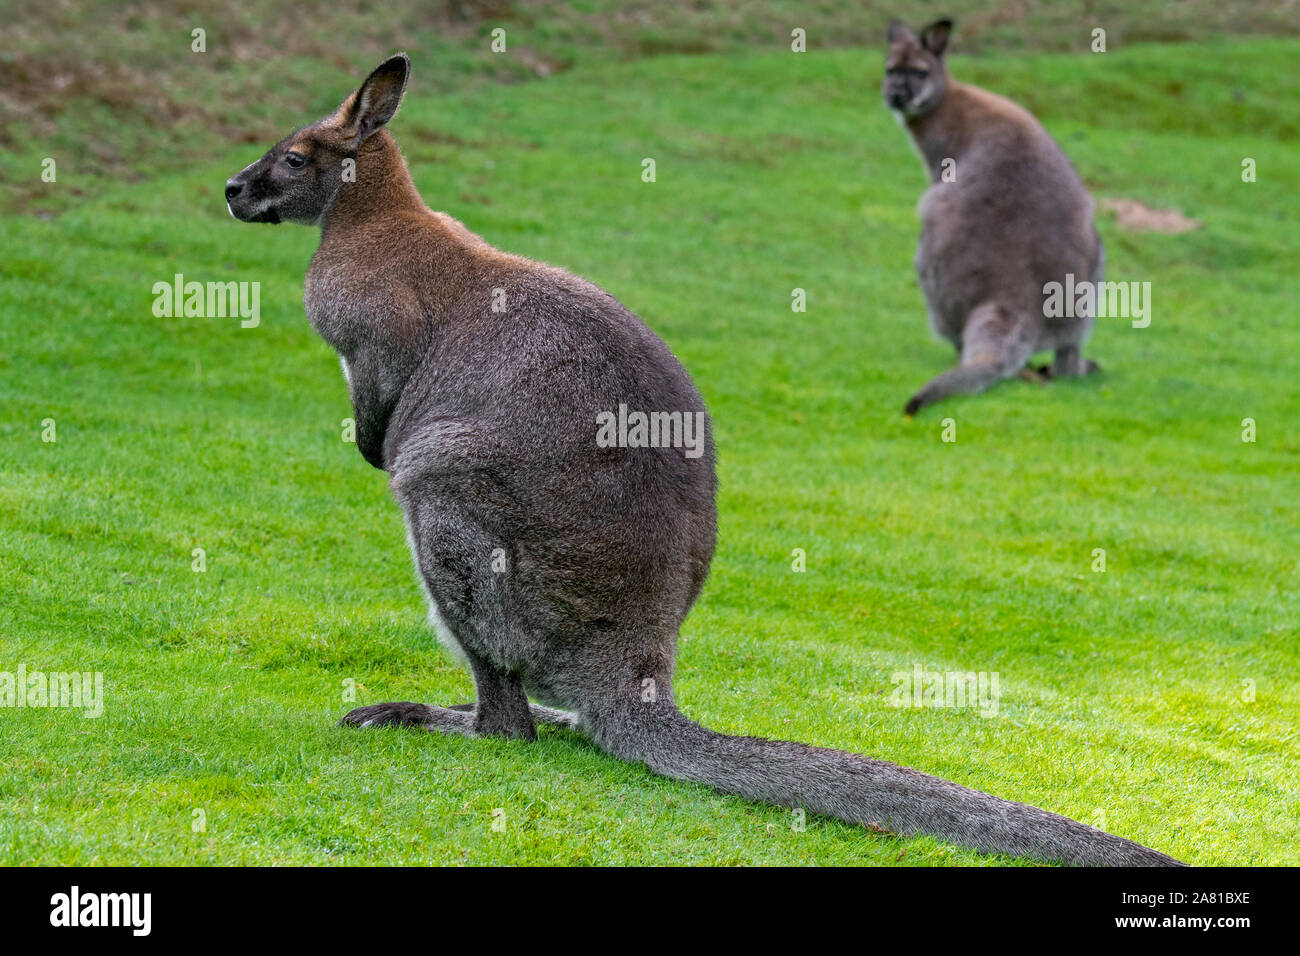 Two Red Necked Wallabies Bennett S Wallabies Macropus Rufogriseus Native To Eastern Australia And Tasmania Introduced To New Zealand And Europe Stock Photo Alamy